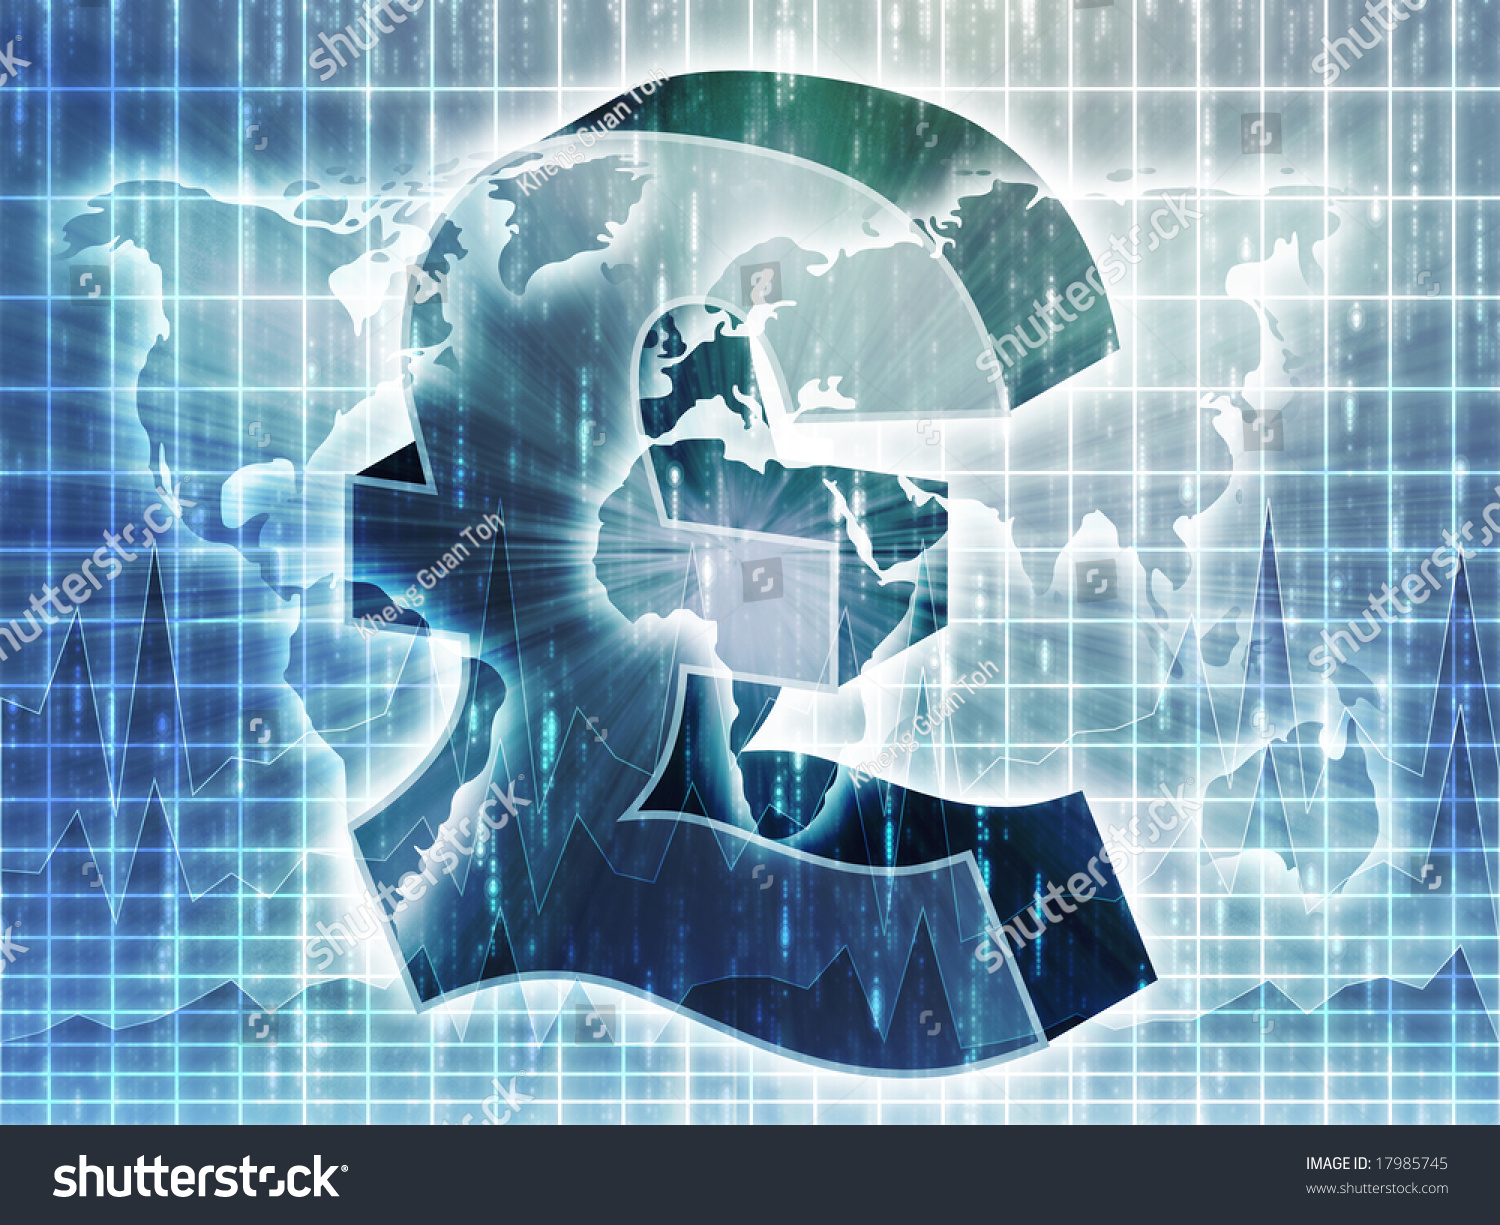 British Pounds Currency Symbol Over World Stock Illustration